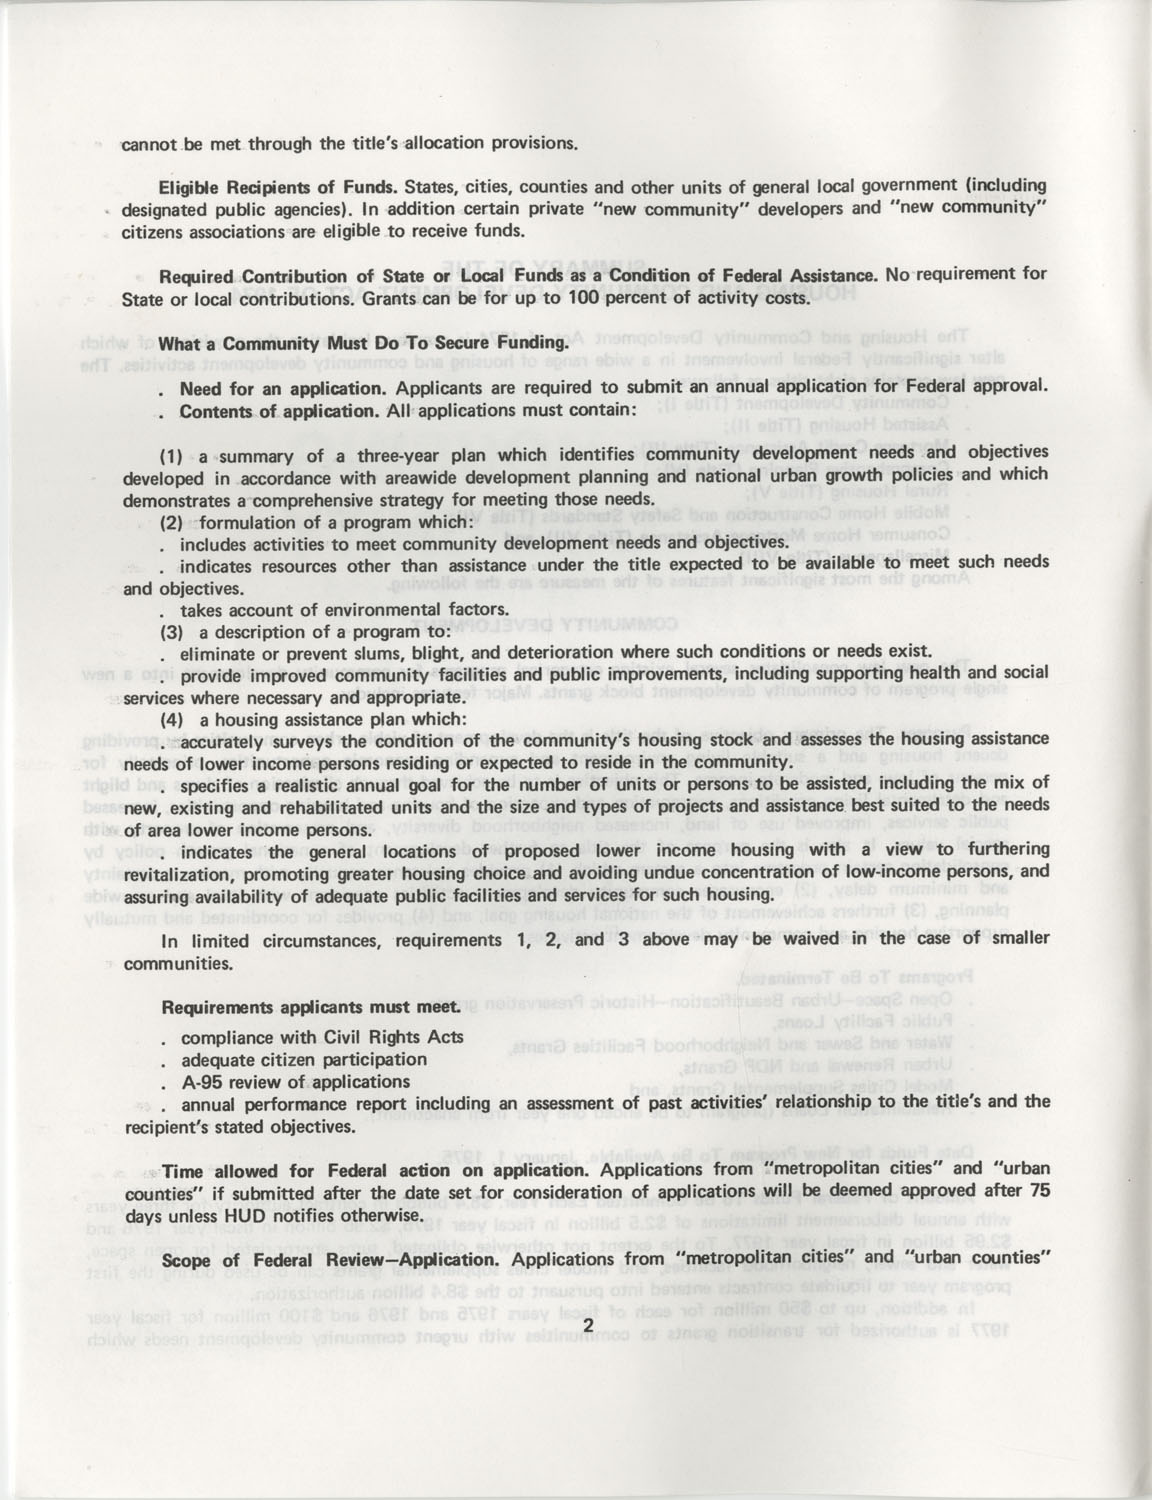 Summary of the Housing and Community Development Act of 1974, Page 2